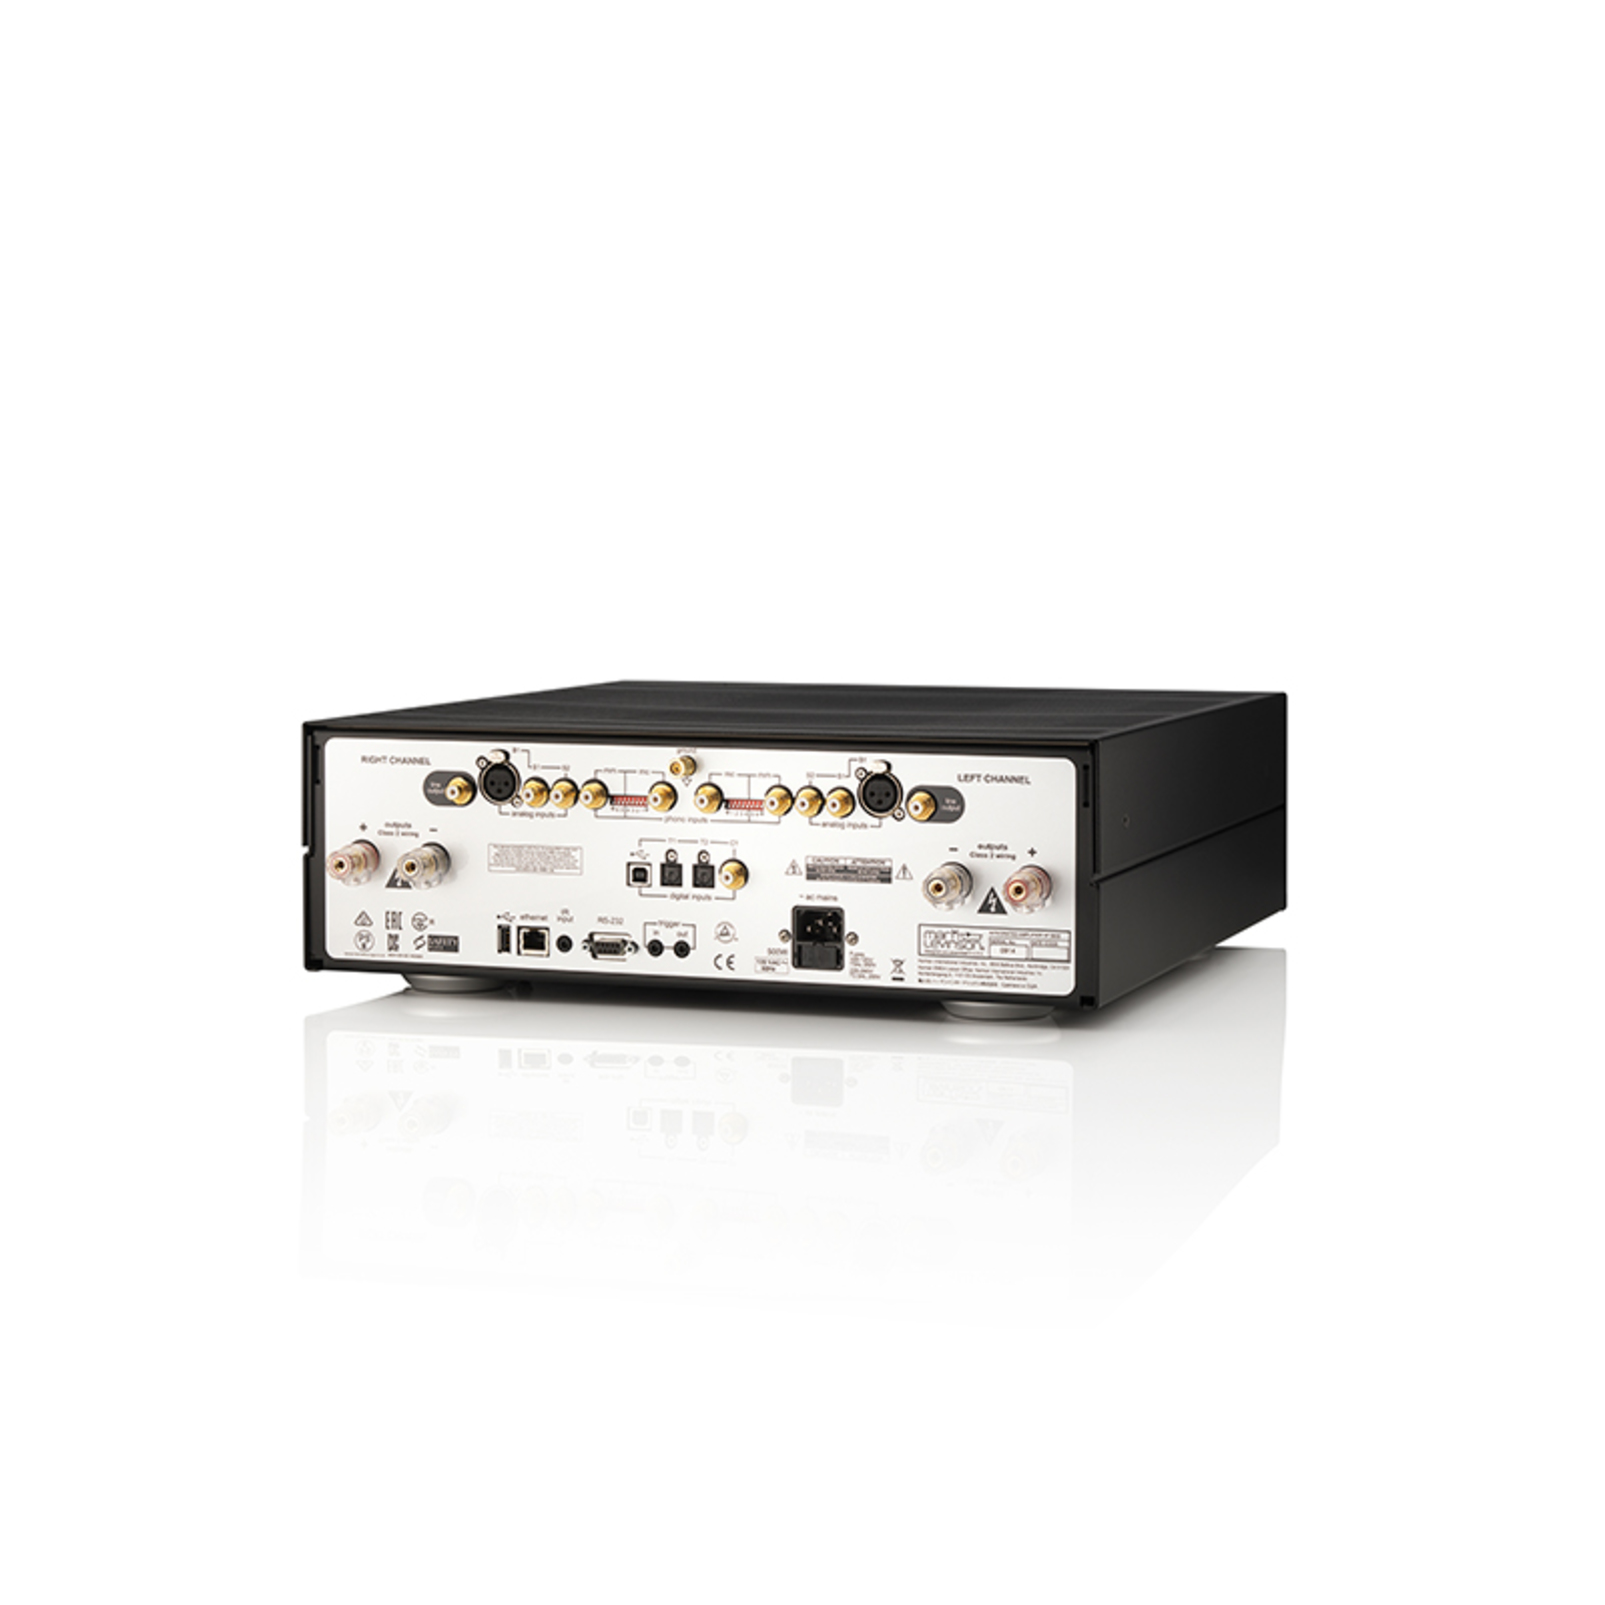 № 5805 - Black / Silver - Integrated Amplifier for Digital and Analog sources - Back